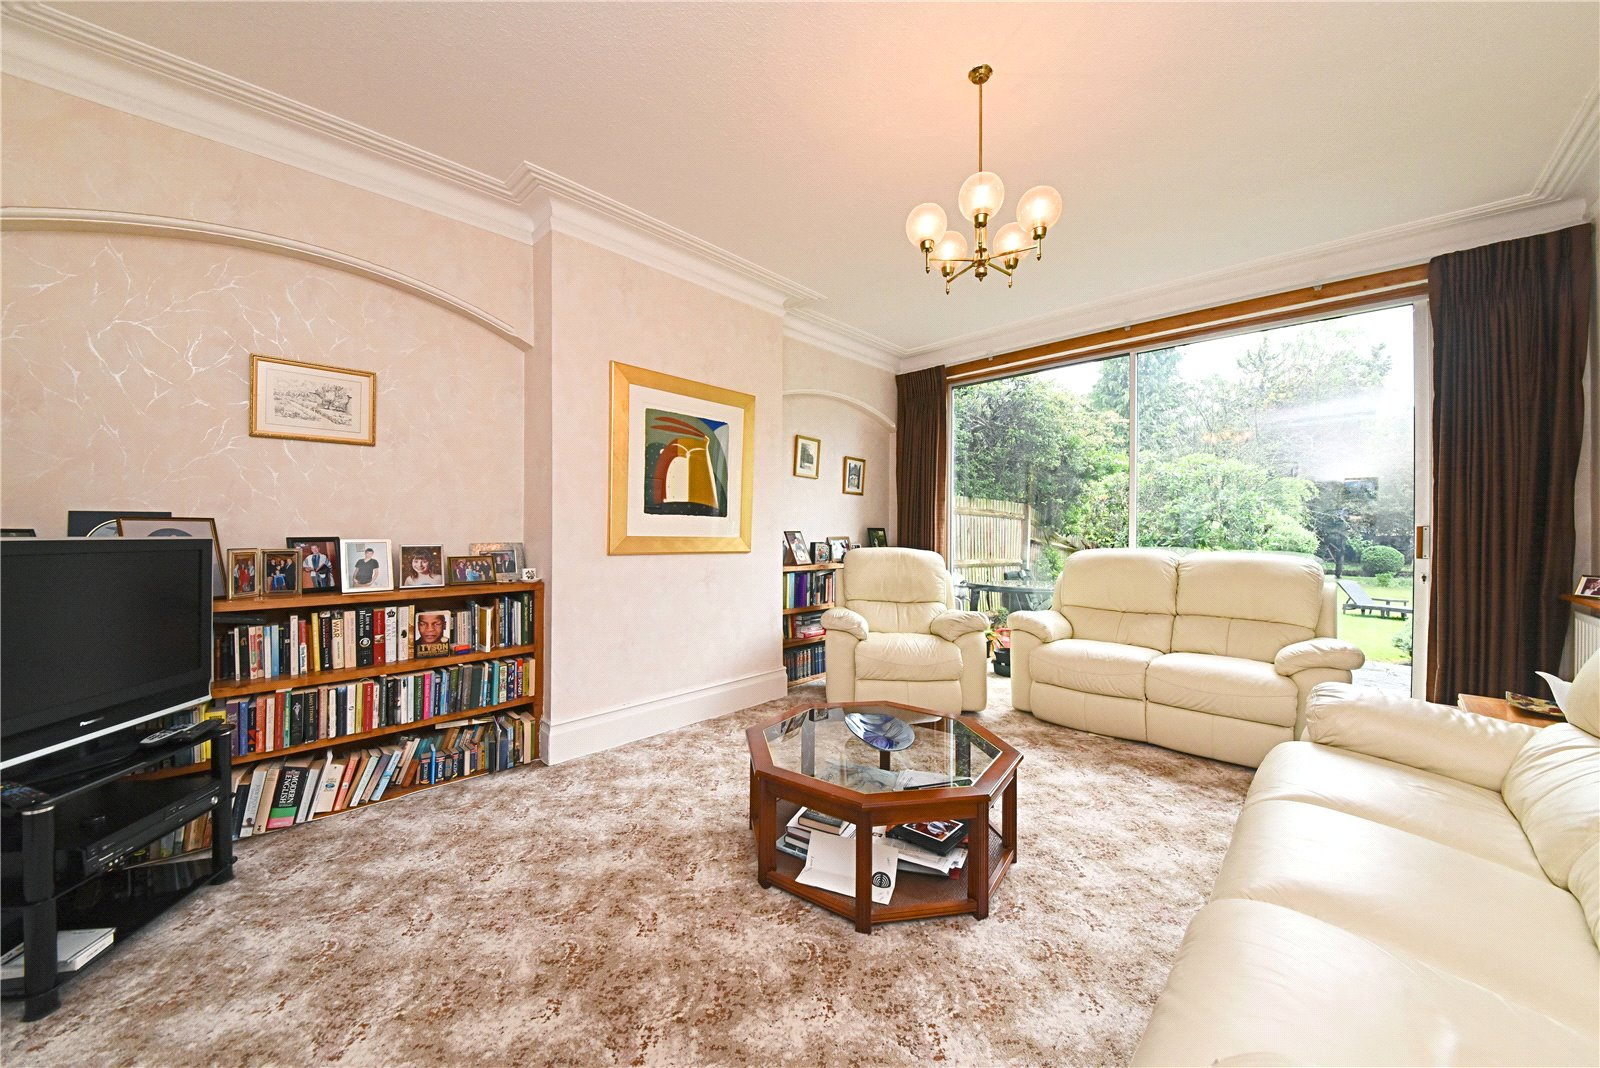 4 bed house for sale in Whetstone, N20 9ED  - Property Image 2